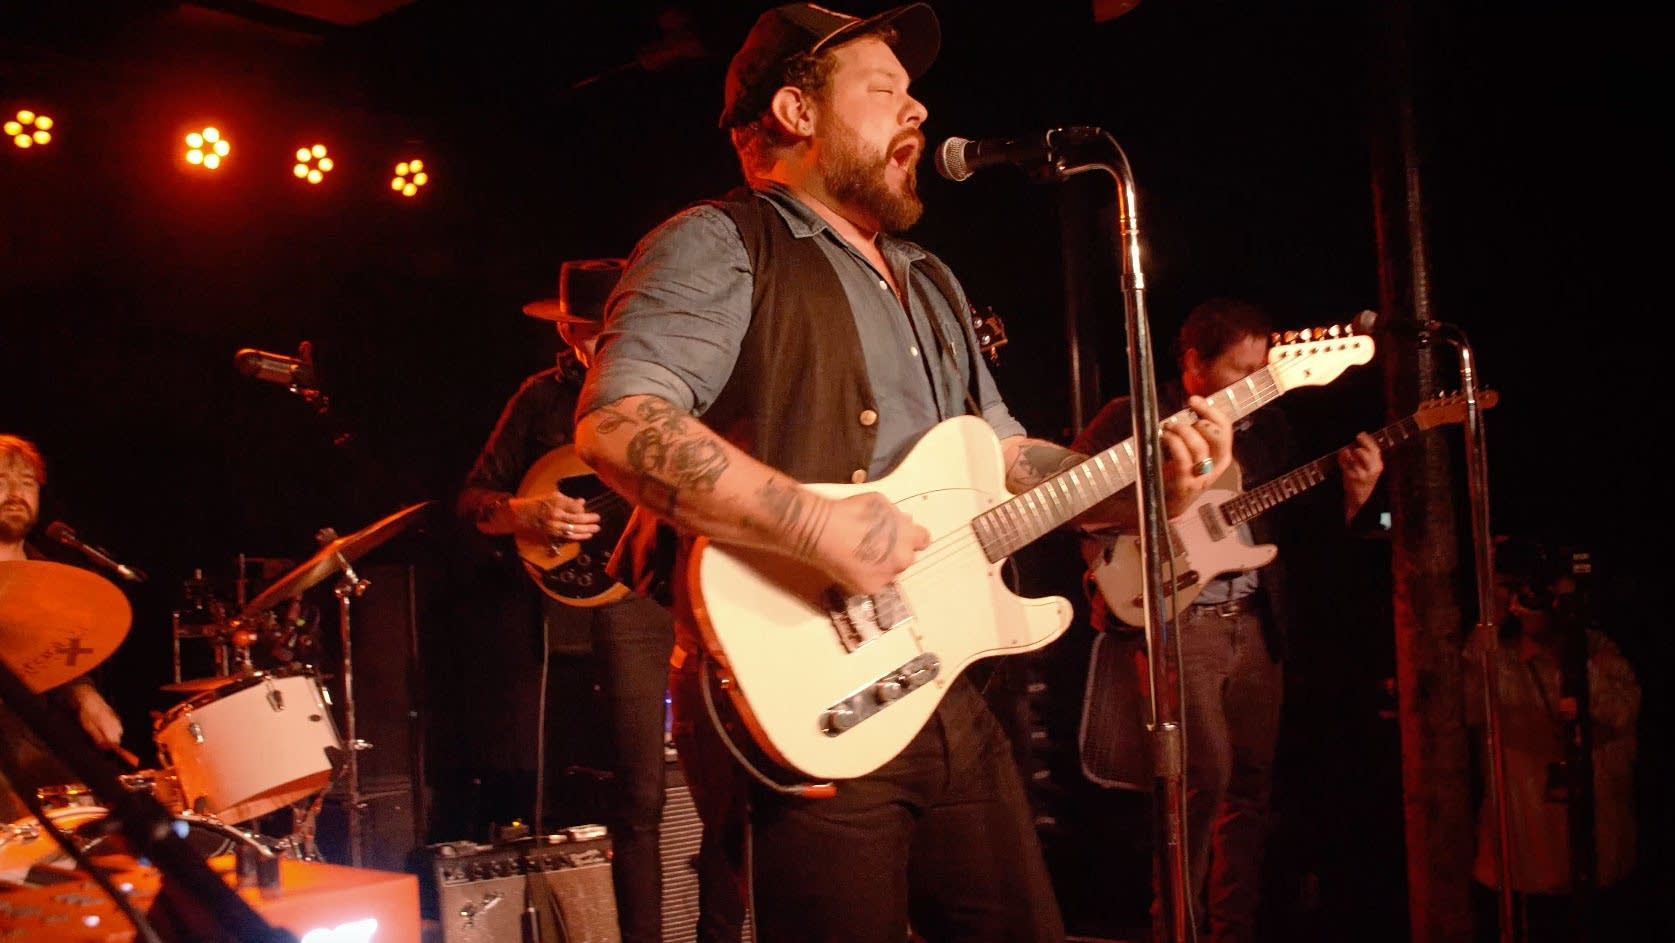 Nathaniel Rateliff and the Night Sweats perform a #MicroShow